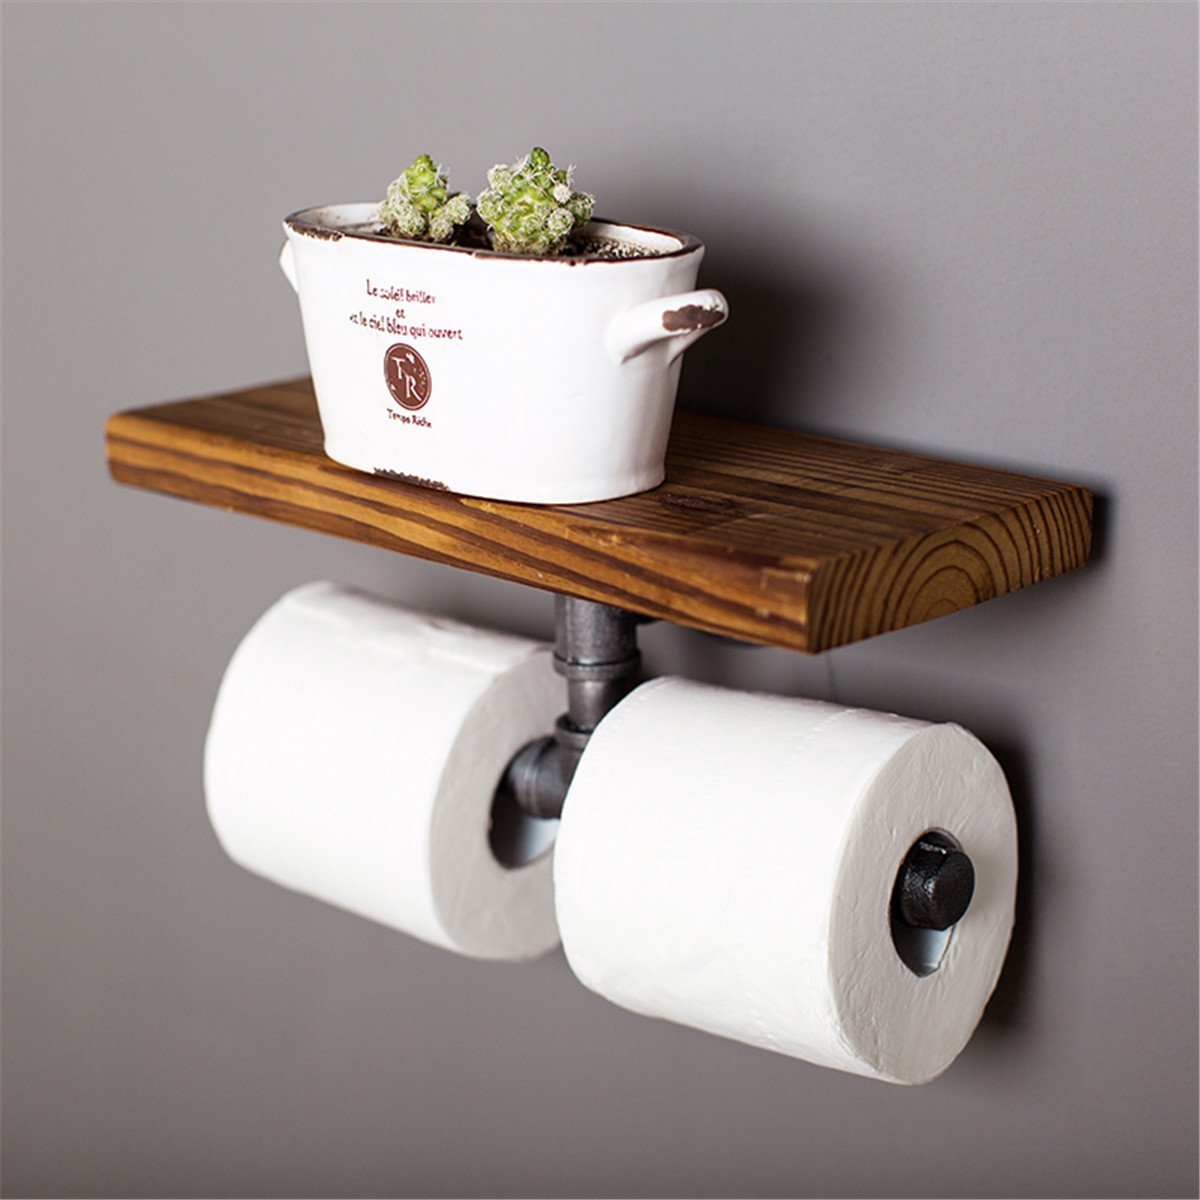 KINGSO Industrial Iron Pipe Decor Toilet Paper Holder, Mounted Floating Rack for Bathroom, Electroplated Black Oil-Paint Surface Paper Towel Rack (30x14cm)